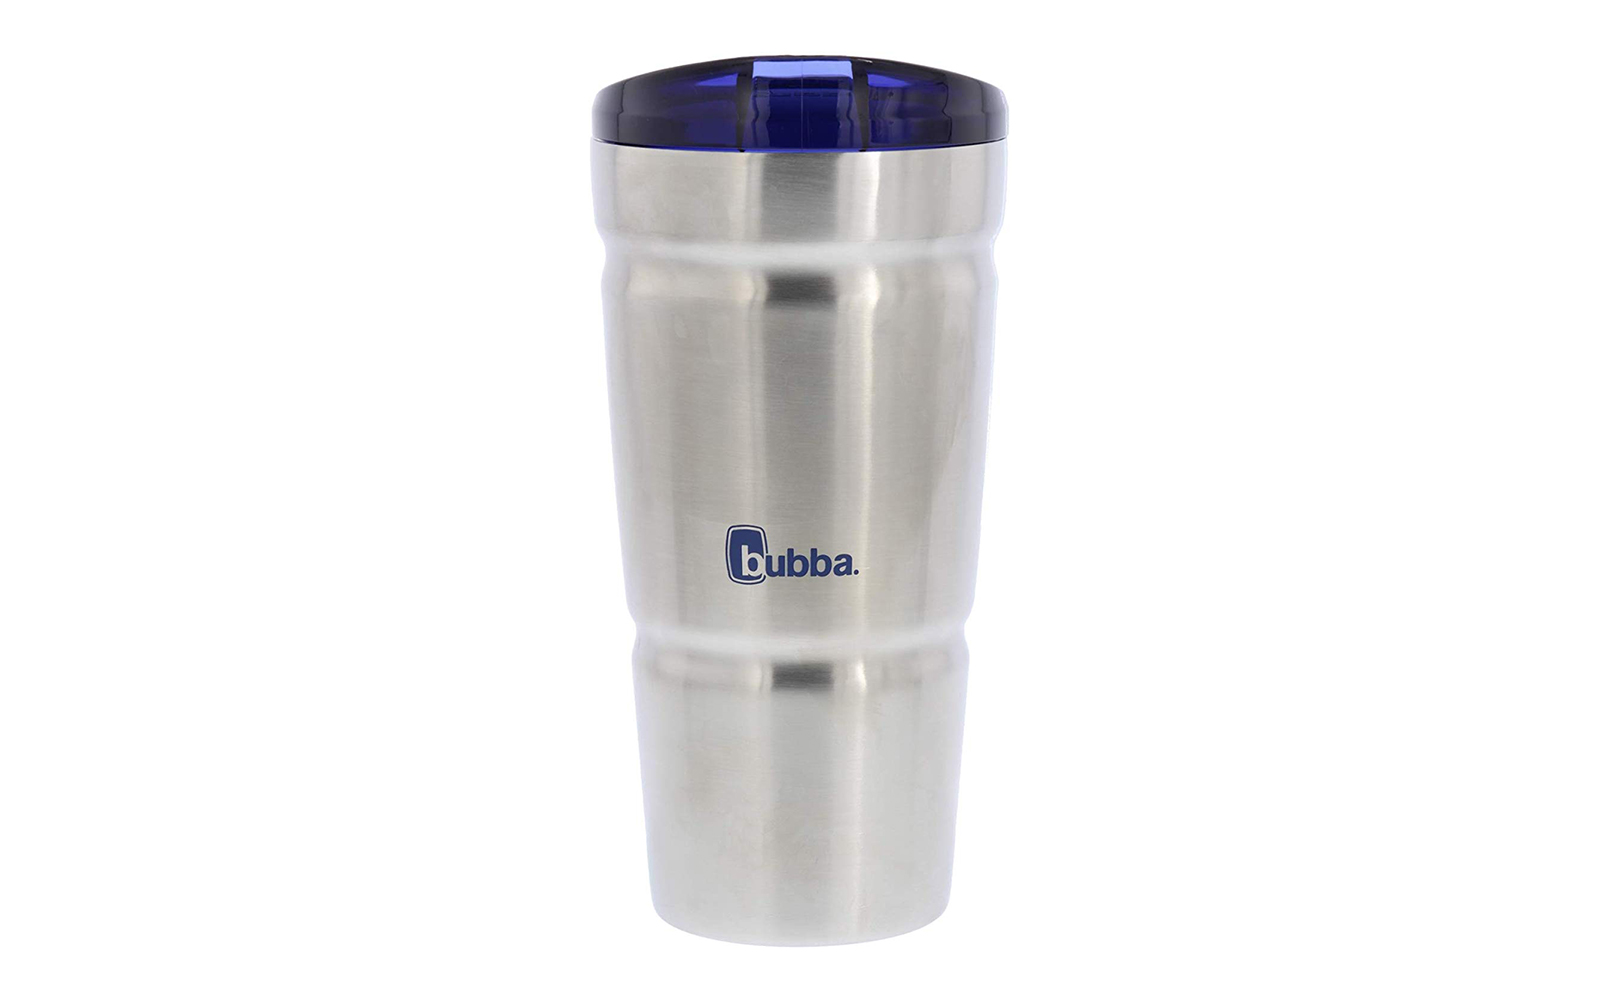 Bubba Stainless Steel Tumbler product